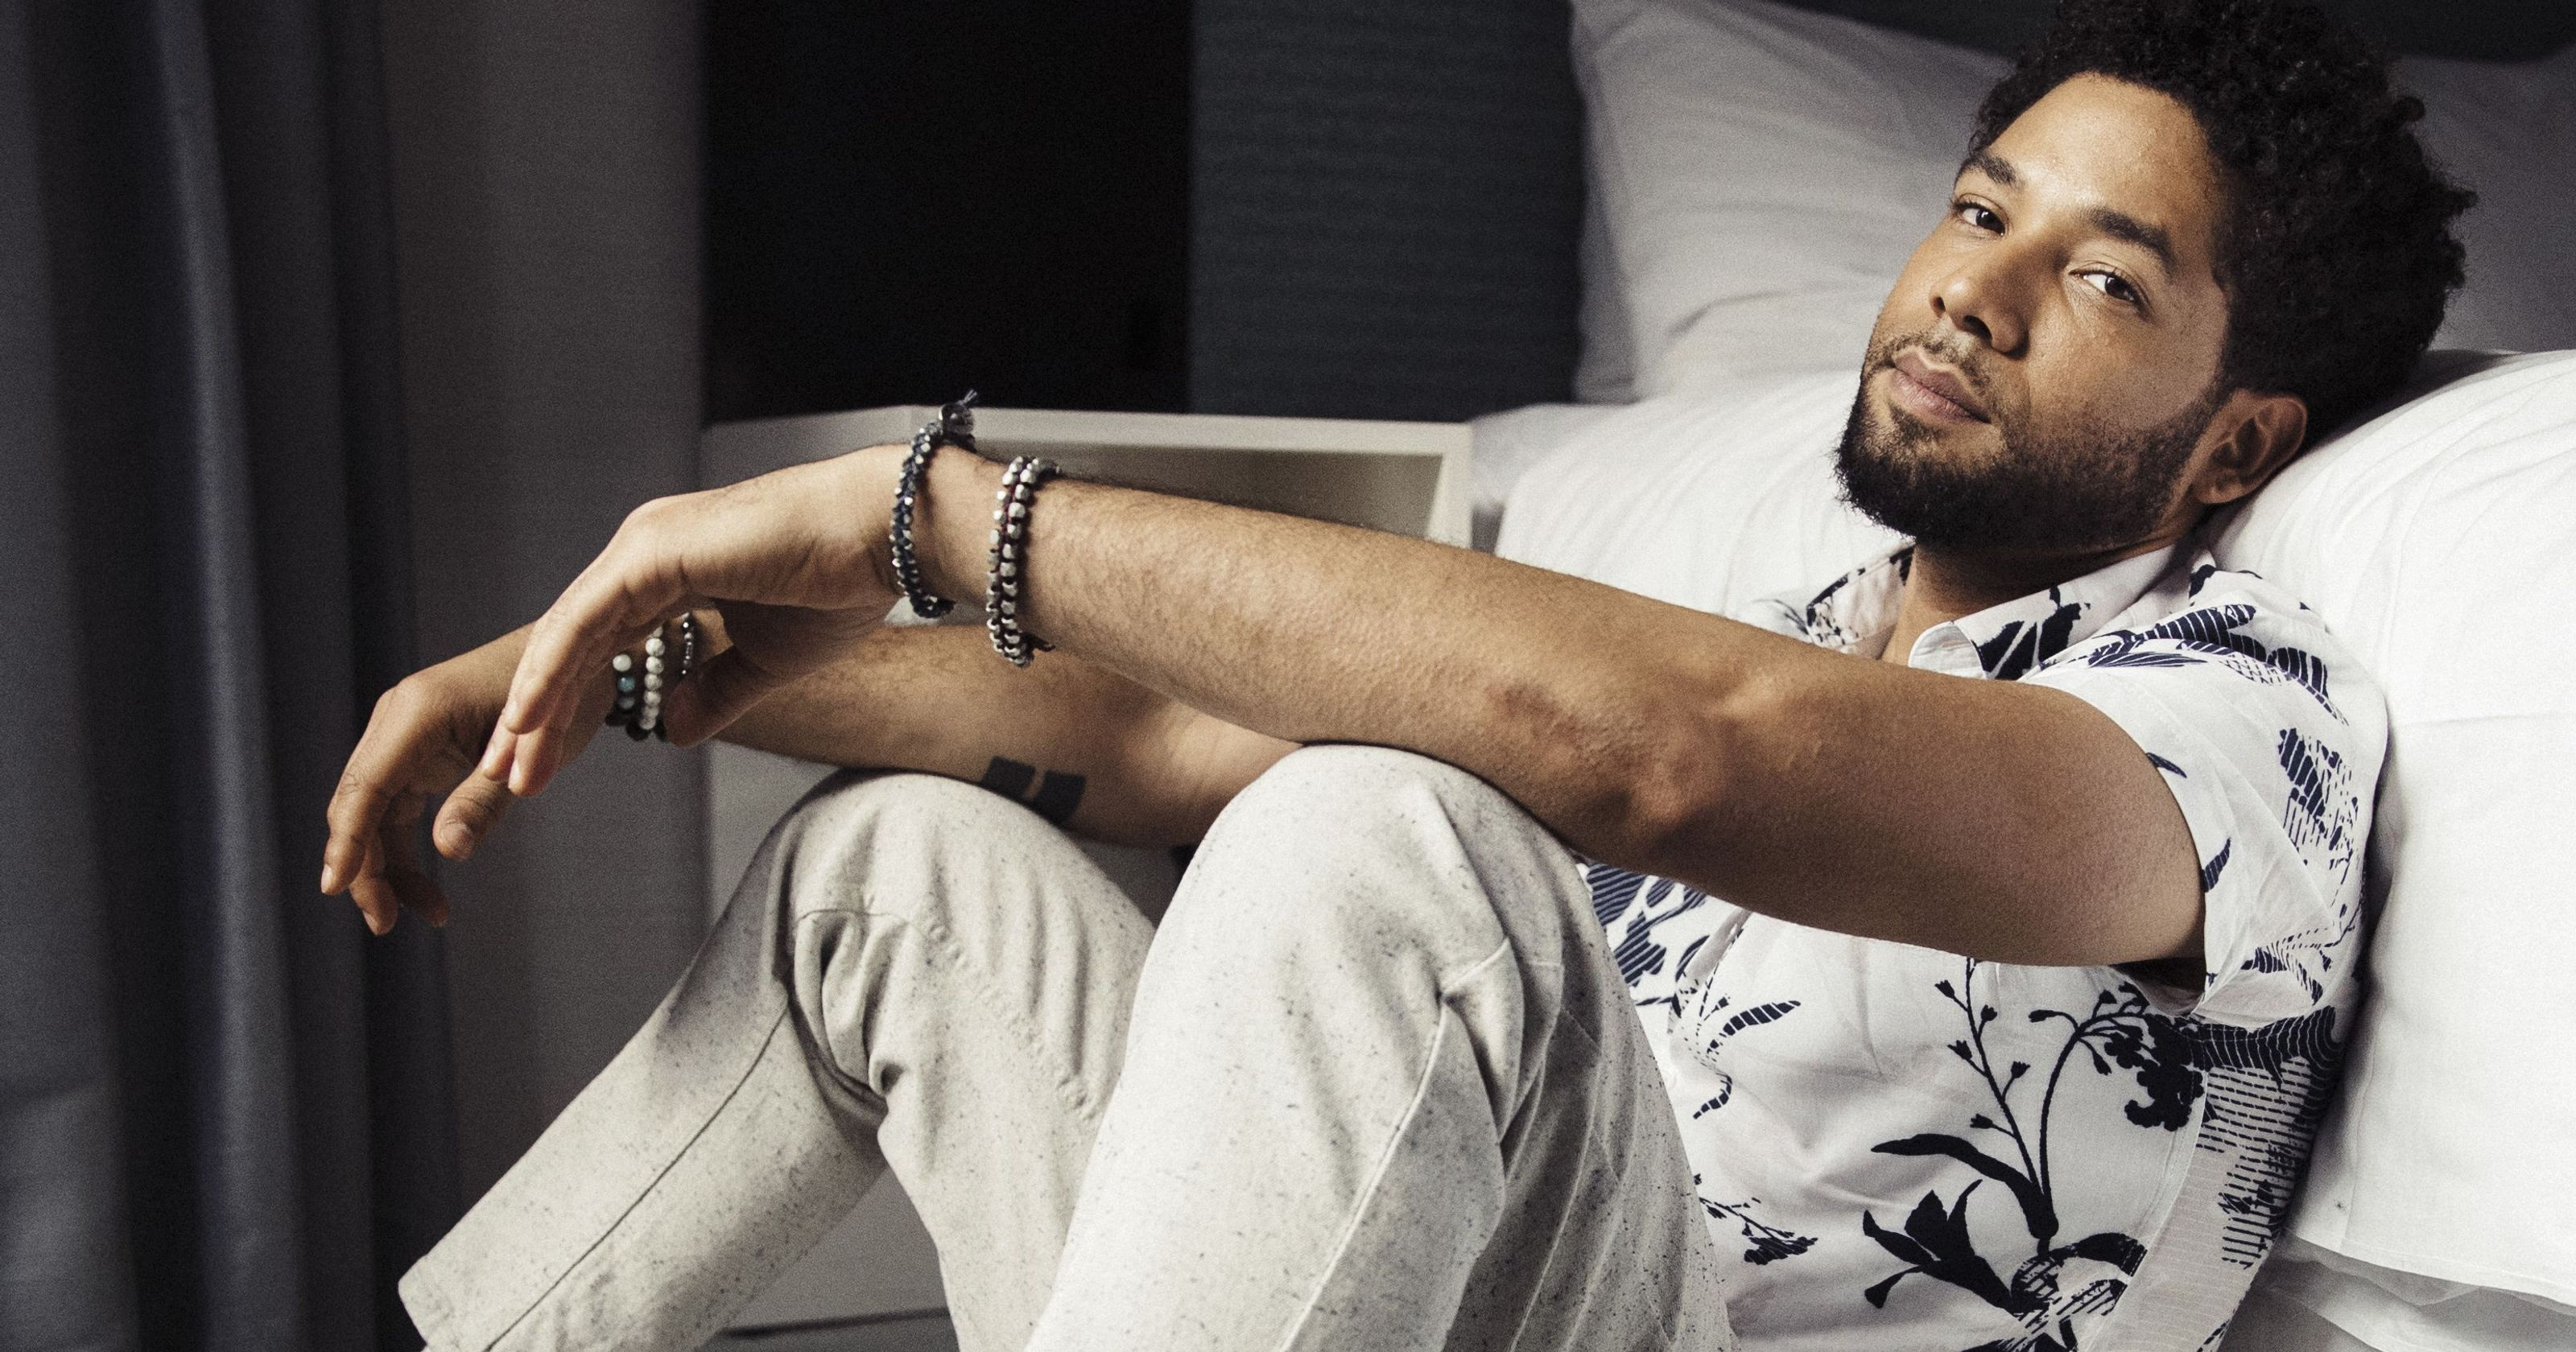 Jussie Smollett says he's OK after assault: 'My body is solid yet my spirit is more grounded'